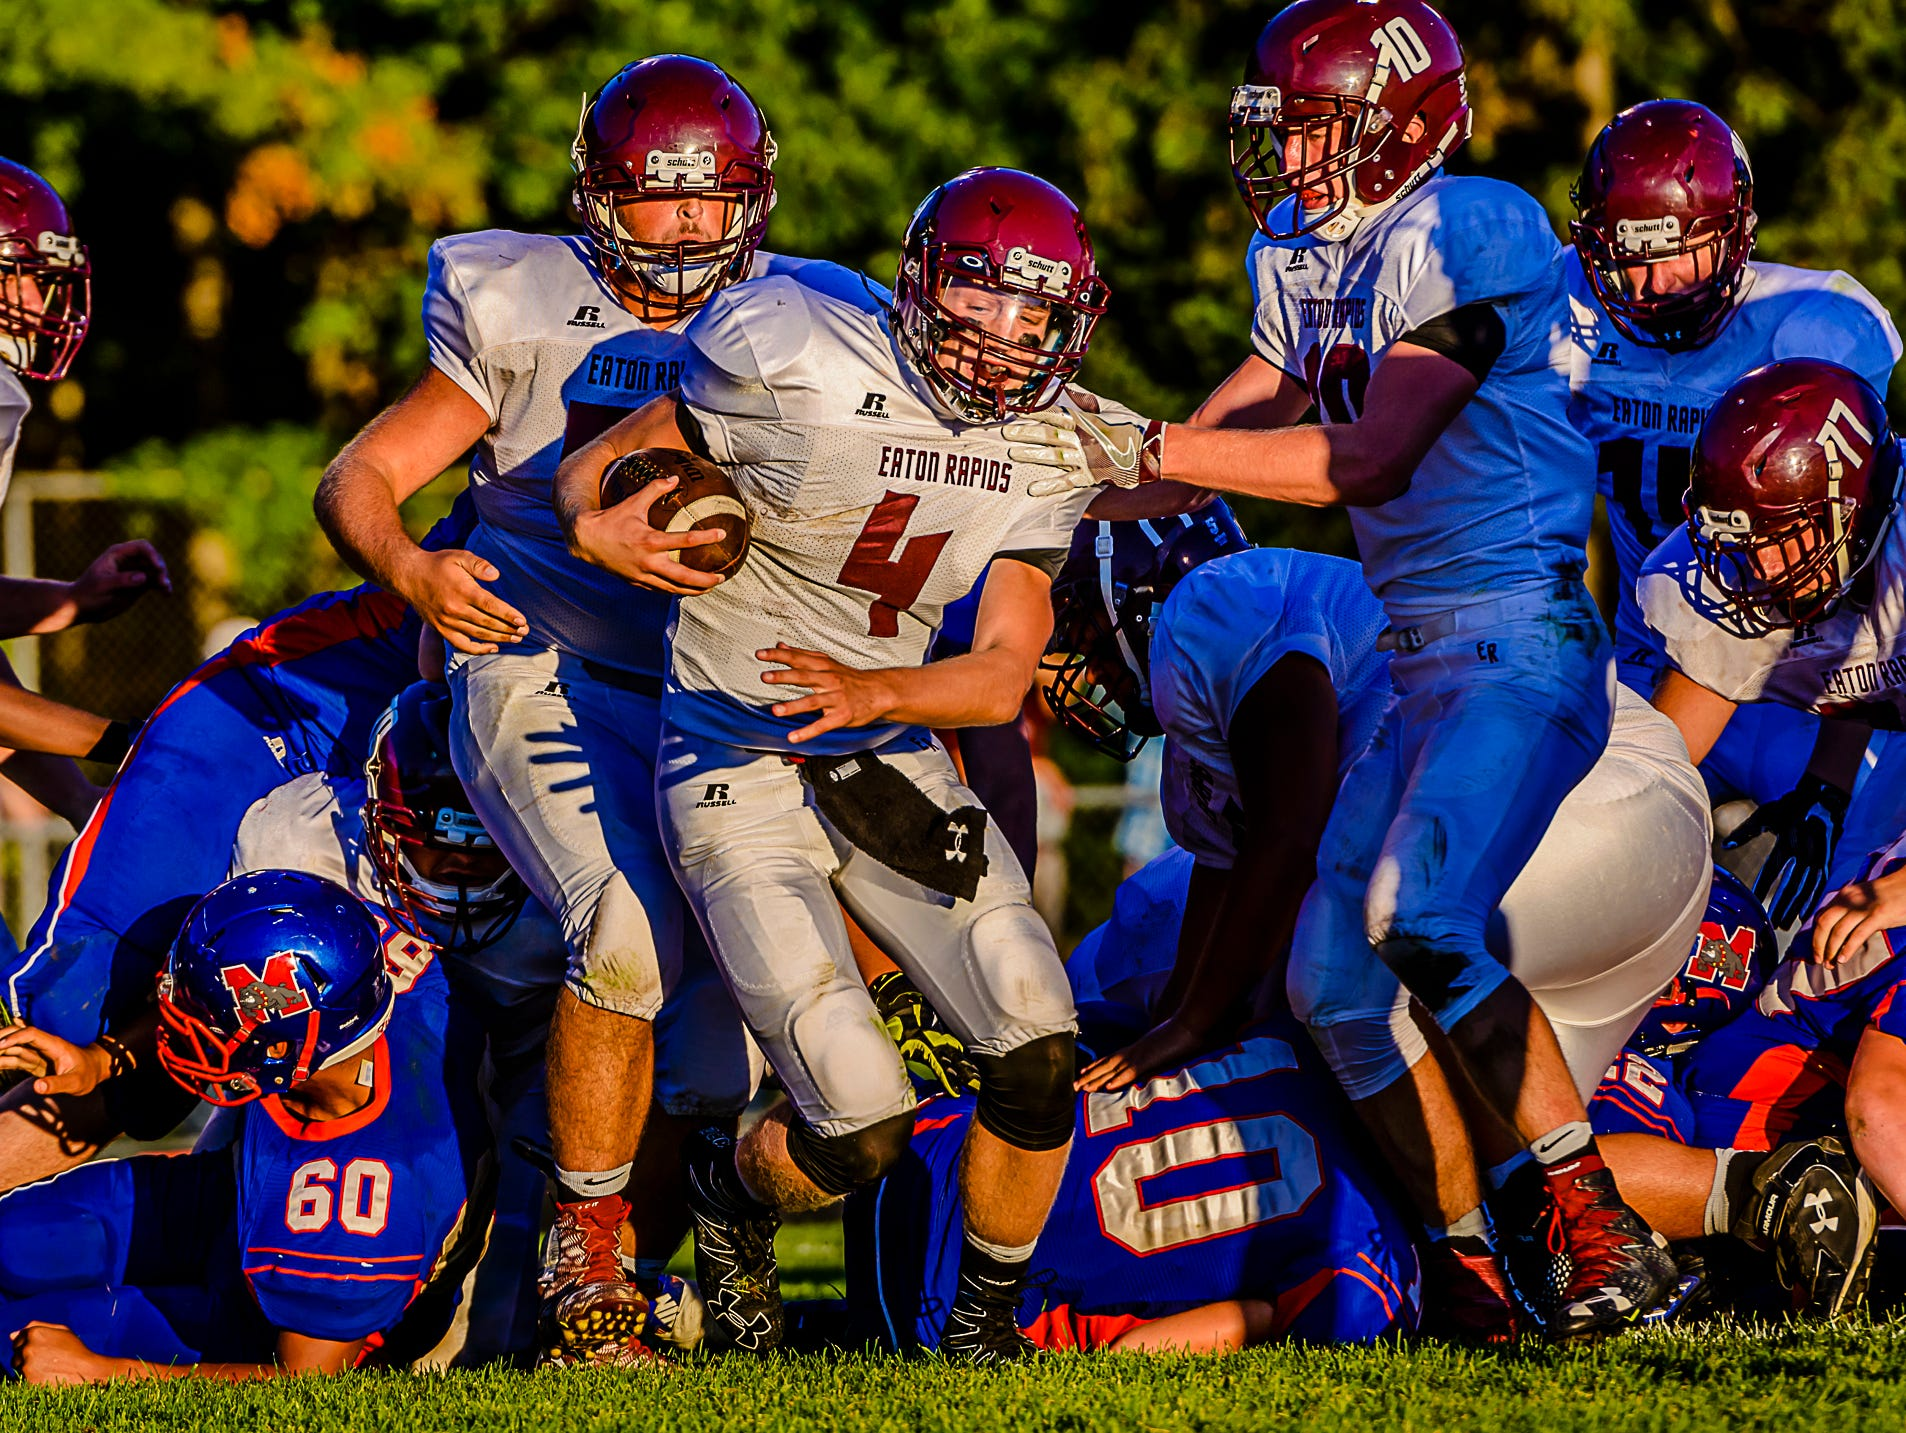 Eaton Rapids quarterback Zach Kemp ,4, burts through a hole in the Mason line to score a touchdown with 6:14 remaining in the 2nd quarter of their game Thursday September 1, 2016 in Mason. Mason and Eaton Rapids would go into the half tied 7-7. KEVIN W. FOWLER PHOTO